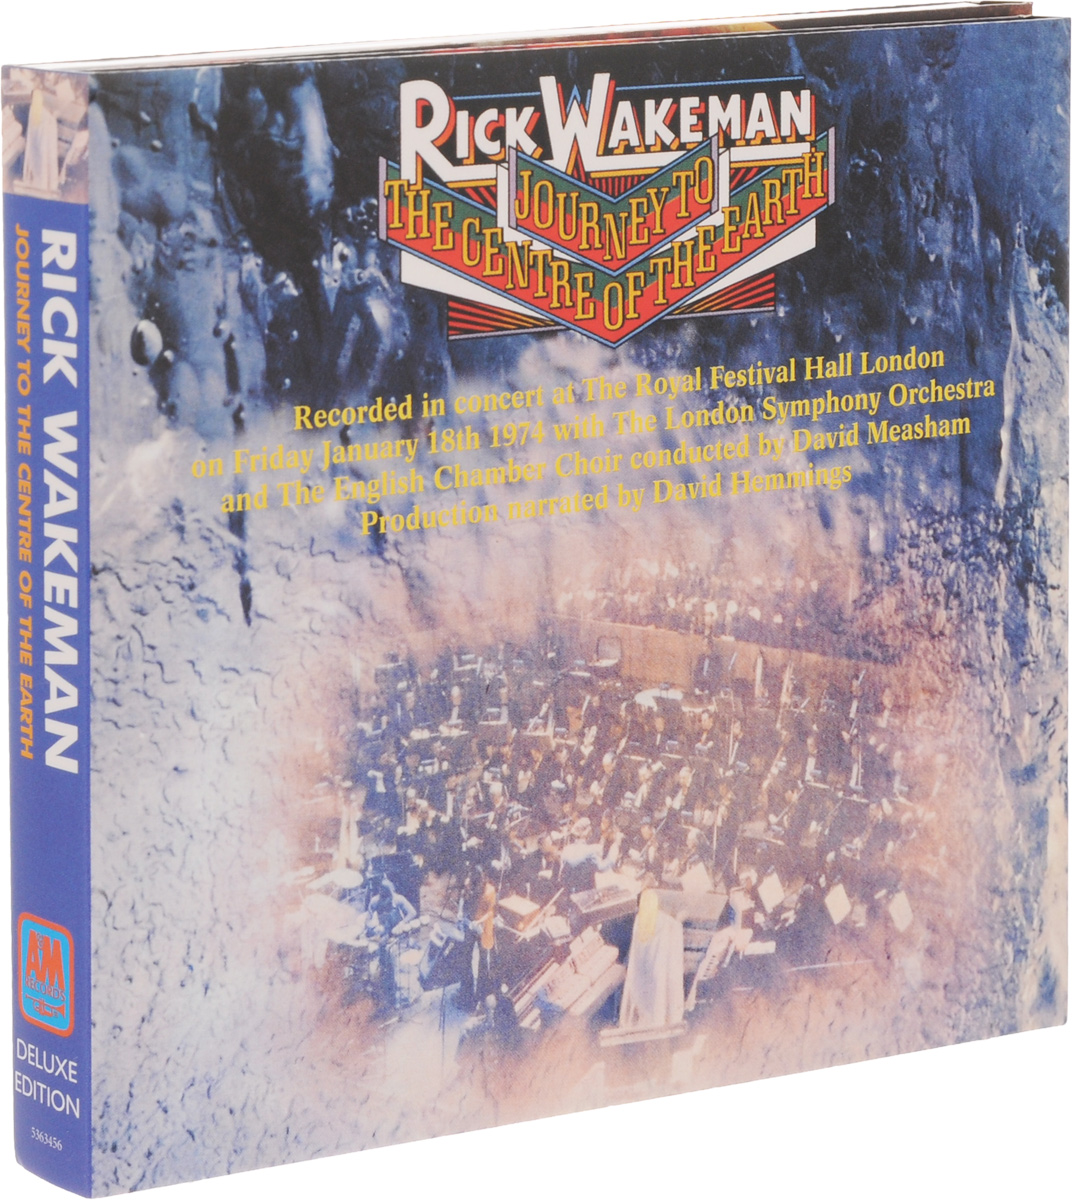 Рик Уэйкман Rick Wakeman. Journey To The Centre Of The Eart. Deluxe Edition (CD + DVD) рик уэйкман rick wakeman the six wives of henry viii lp